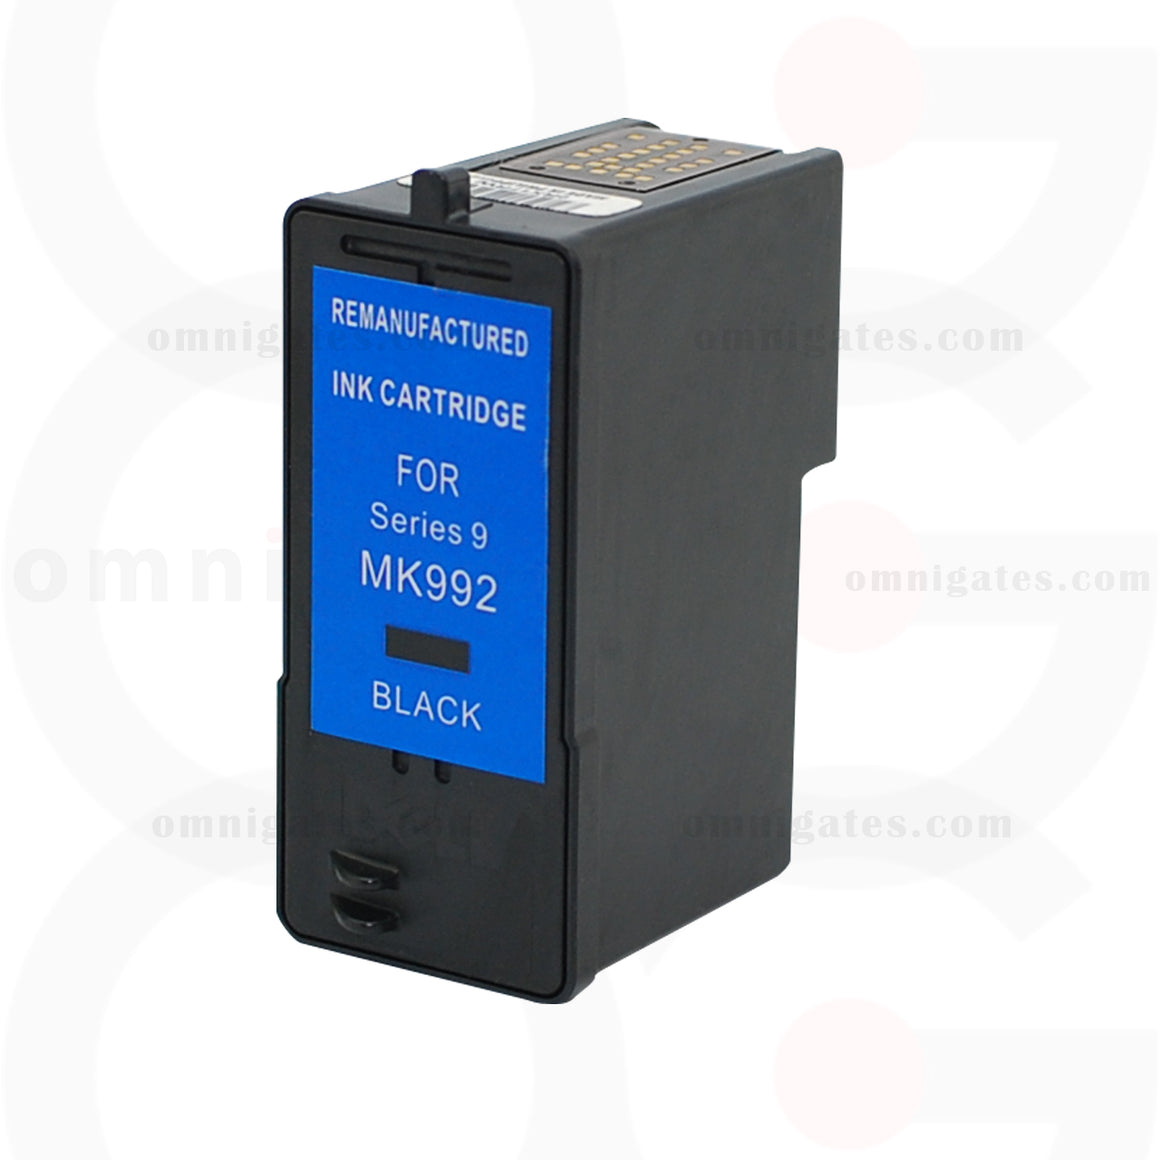 OGP Remanufactured Dell MK992 Inkjet Cartridge, Black - omnigates.com